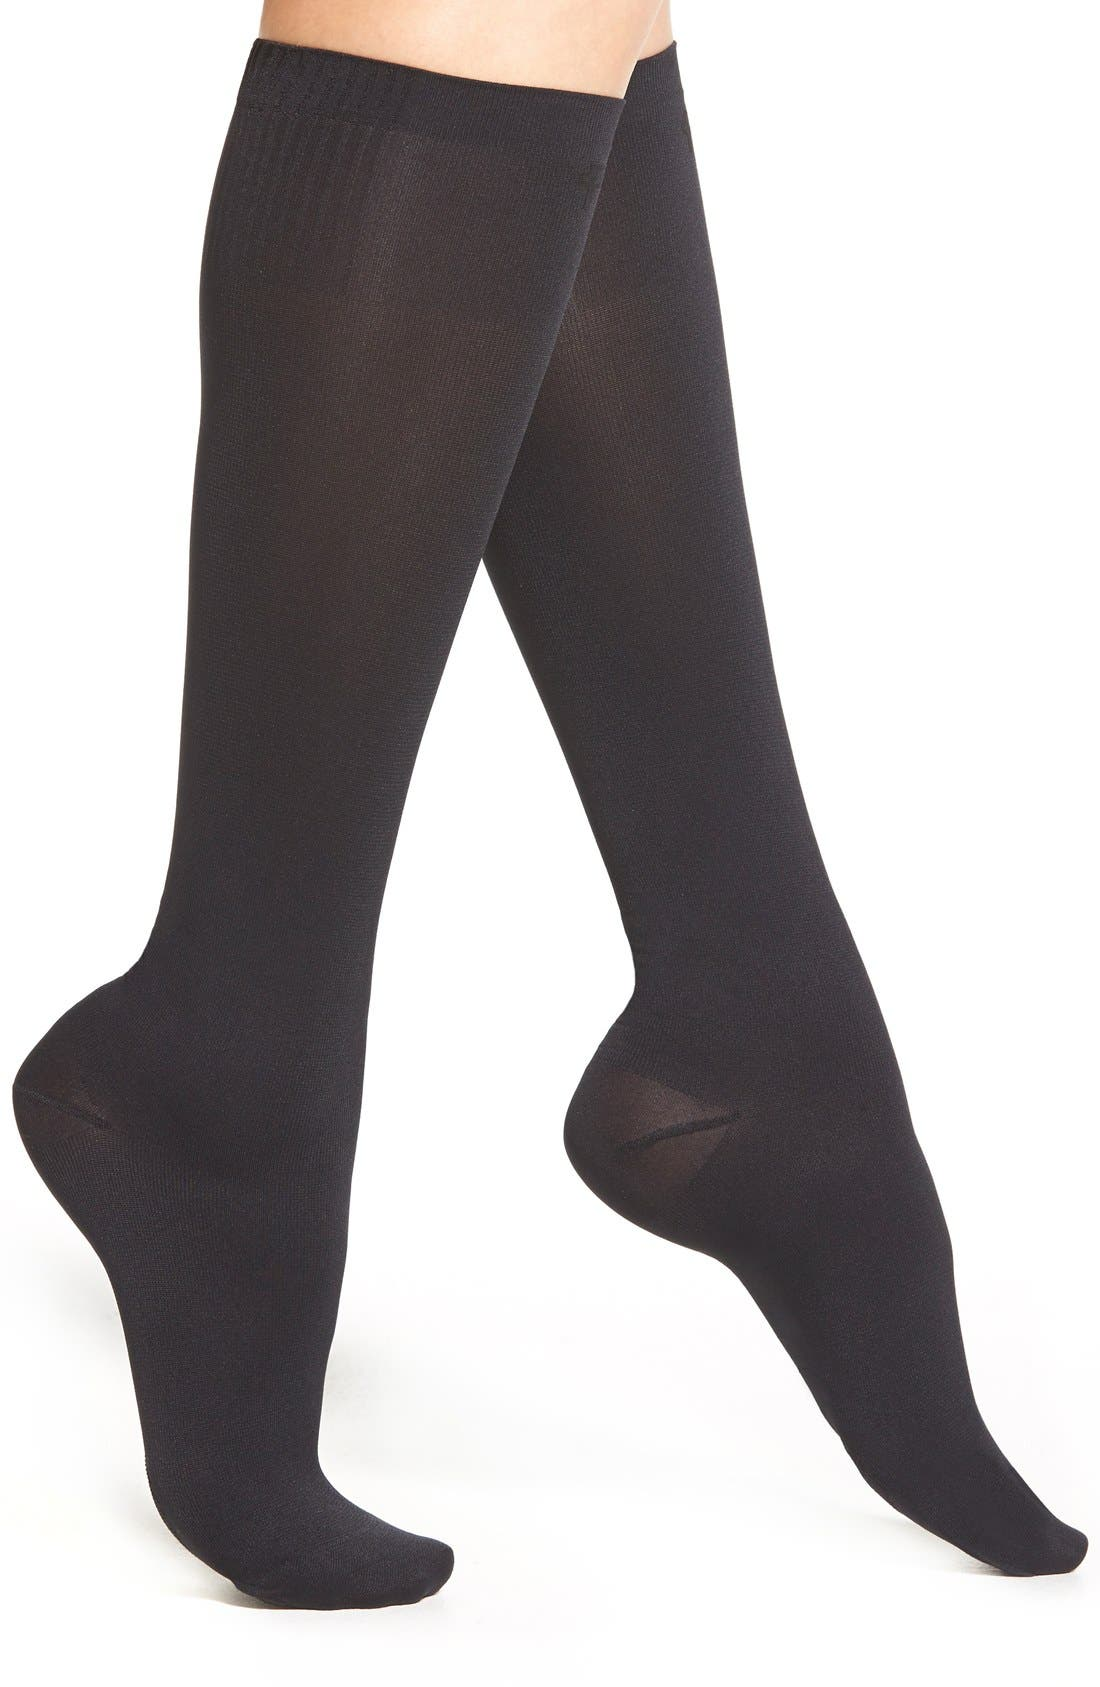 Alternate Image 1 Selected - Pretty Polly 'On the Go' Compression Trouser Socks